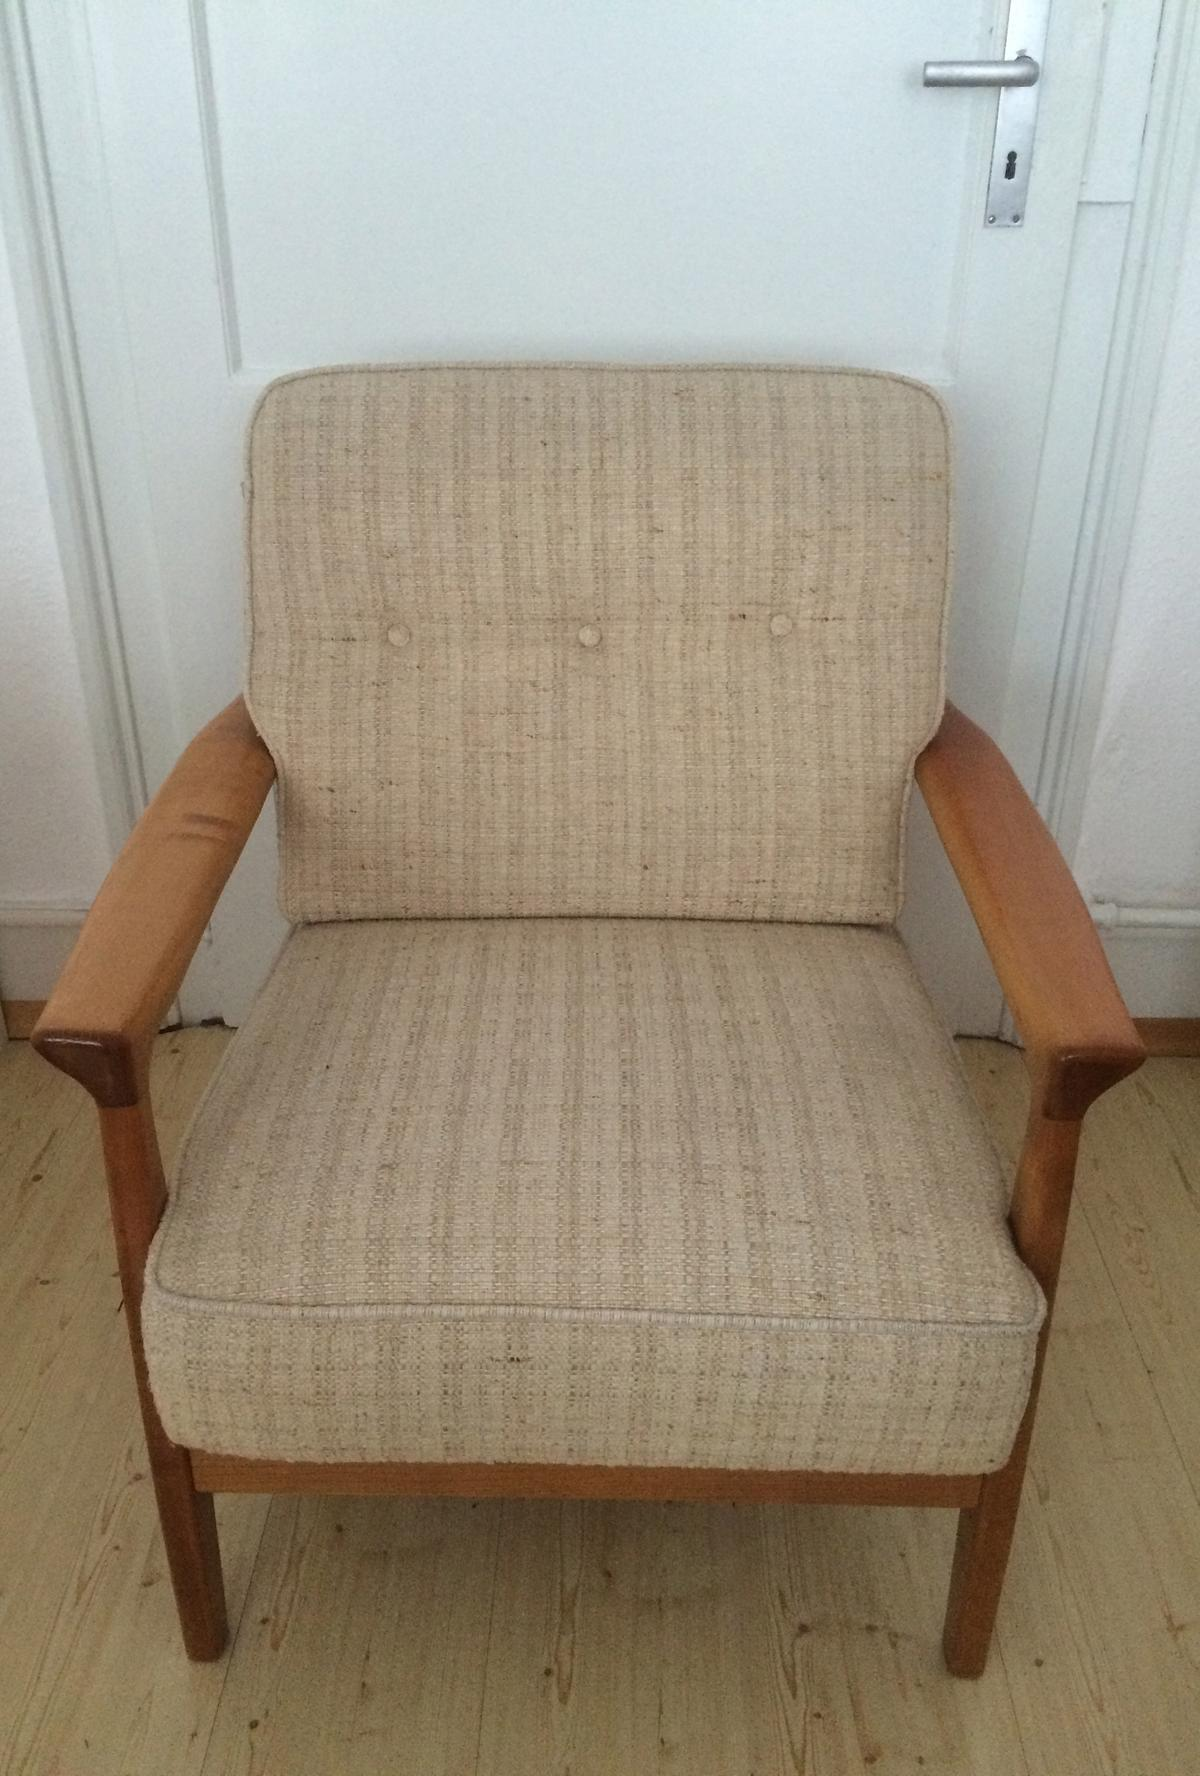 Sessel 70er Holz Sessel Holz Easy Chair Danish Design 70er In 68161 Mannheim Für